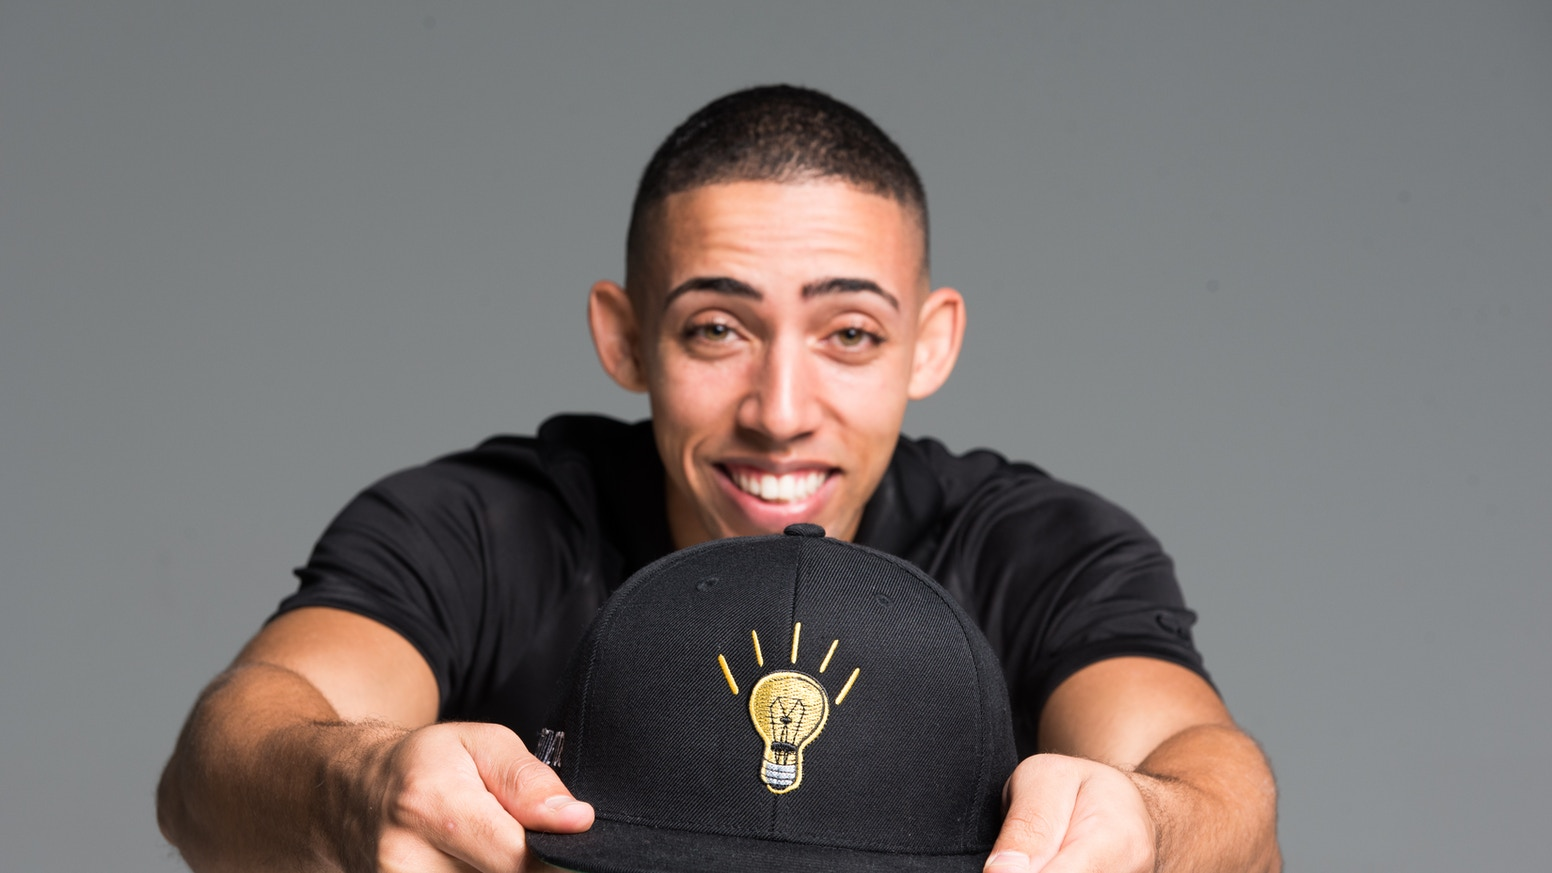 """The """"Positive Tos 'Thinking Cap'"""" embodies independent thinking, creativity & letting your light shine❗"""